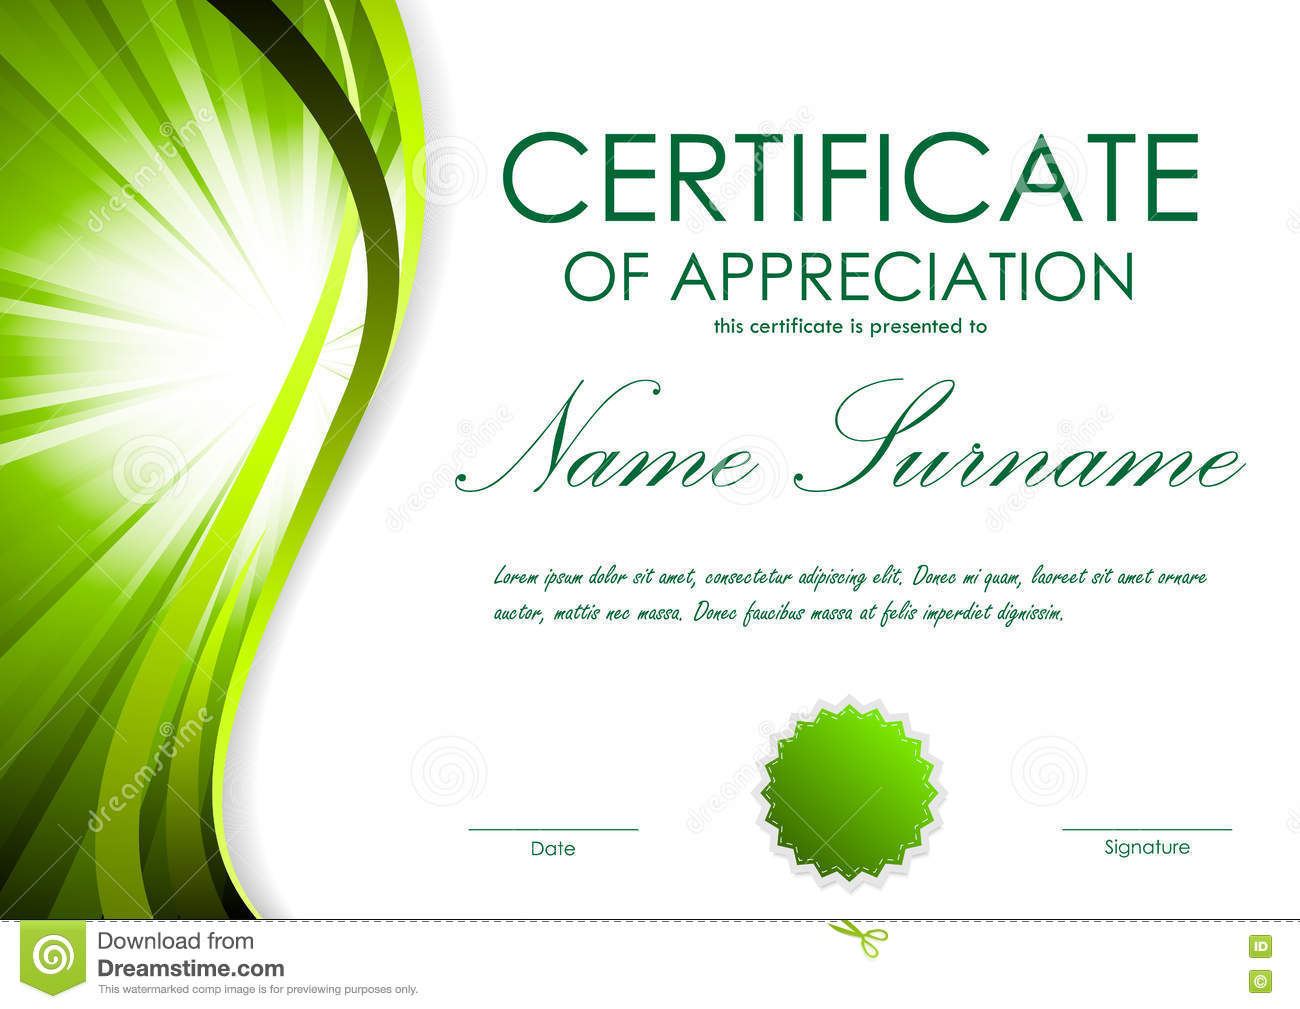 Certificate of appreciation templates free download gallery certificate of appreciation template stock vector illustration certificate of appreciation template royalty free vector download certificate yadclub Image collections